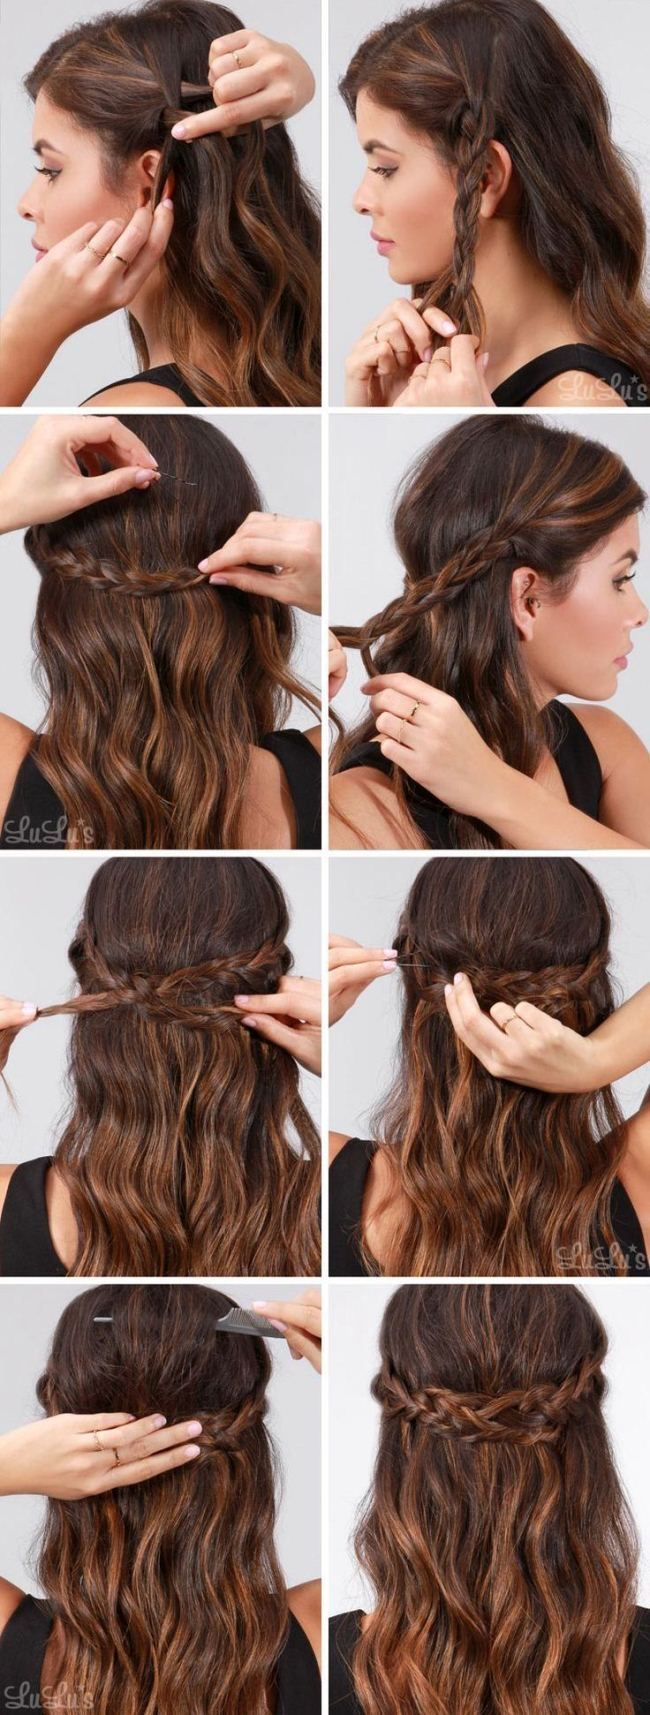 Quick Simple Formal Party Hairstyles For Long Hair Diy Ideas 2018 Easy Hair Style Long Hair Diy Long Hair Styles Evening Hairstyles